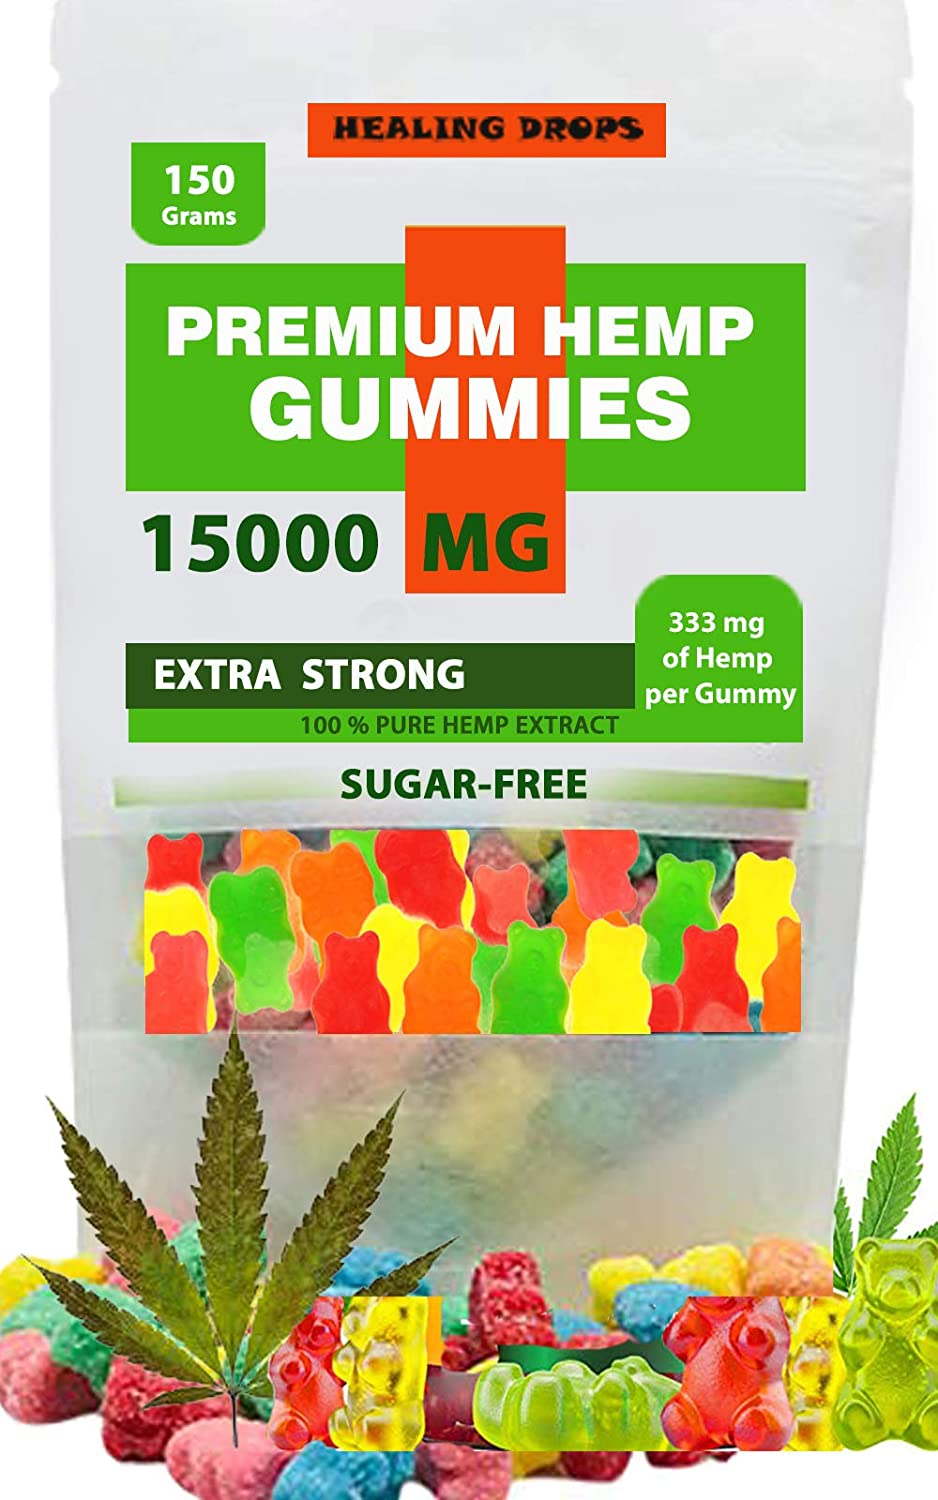 Premium Organic Hemp Sugar-Free Gummies Natural Health Support 15000MG, 166MG Each, High Potency Relaxing, Stress & Anxiety Relief Rich in Vitamins B, E, C, D, Omega 3, 6, 9 Super Friendly Gummy Bears